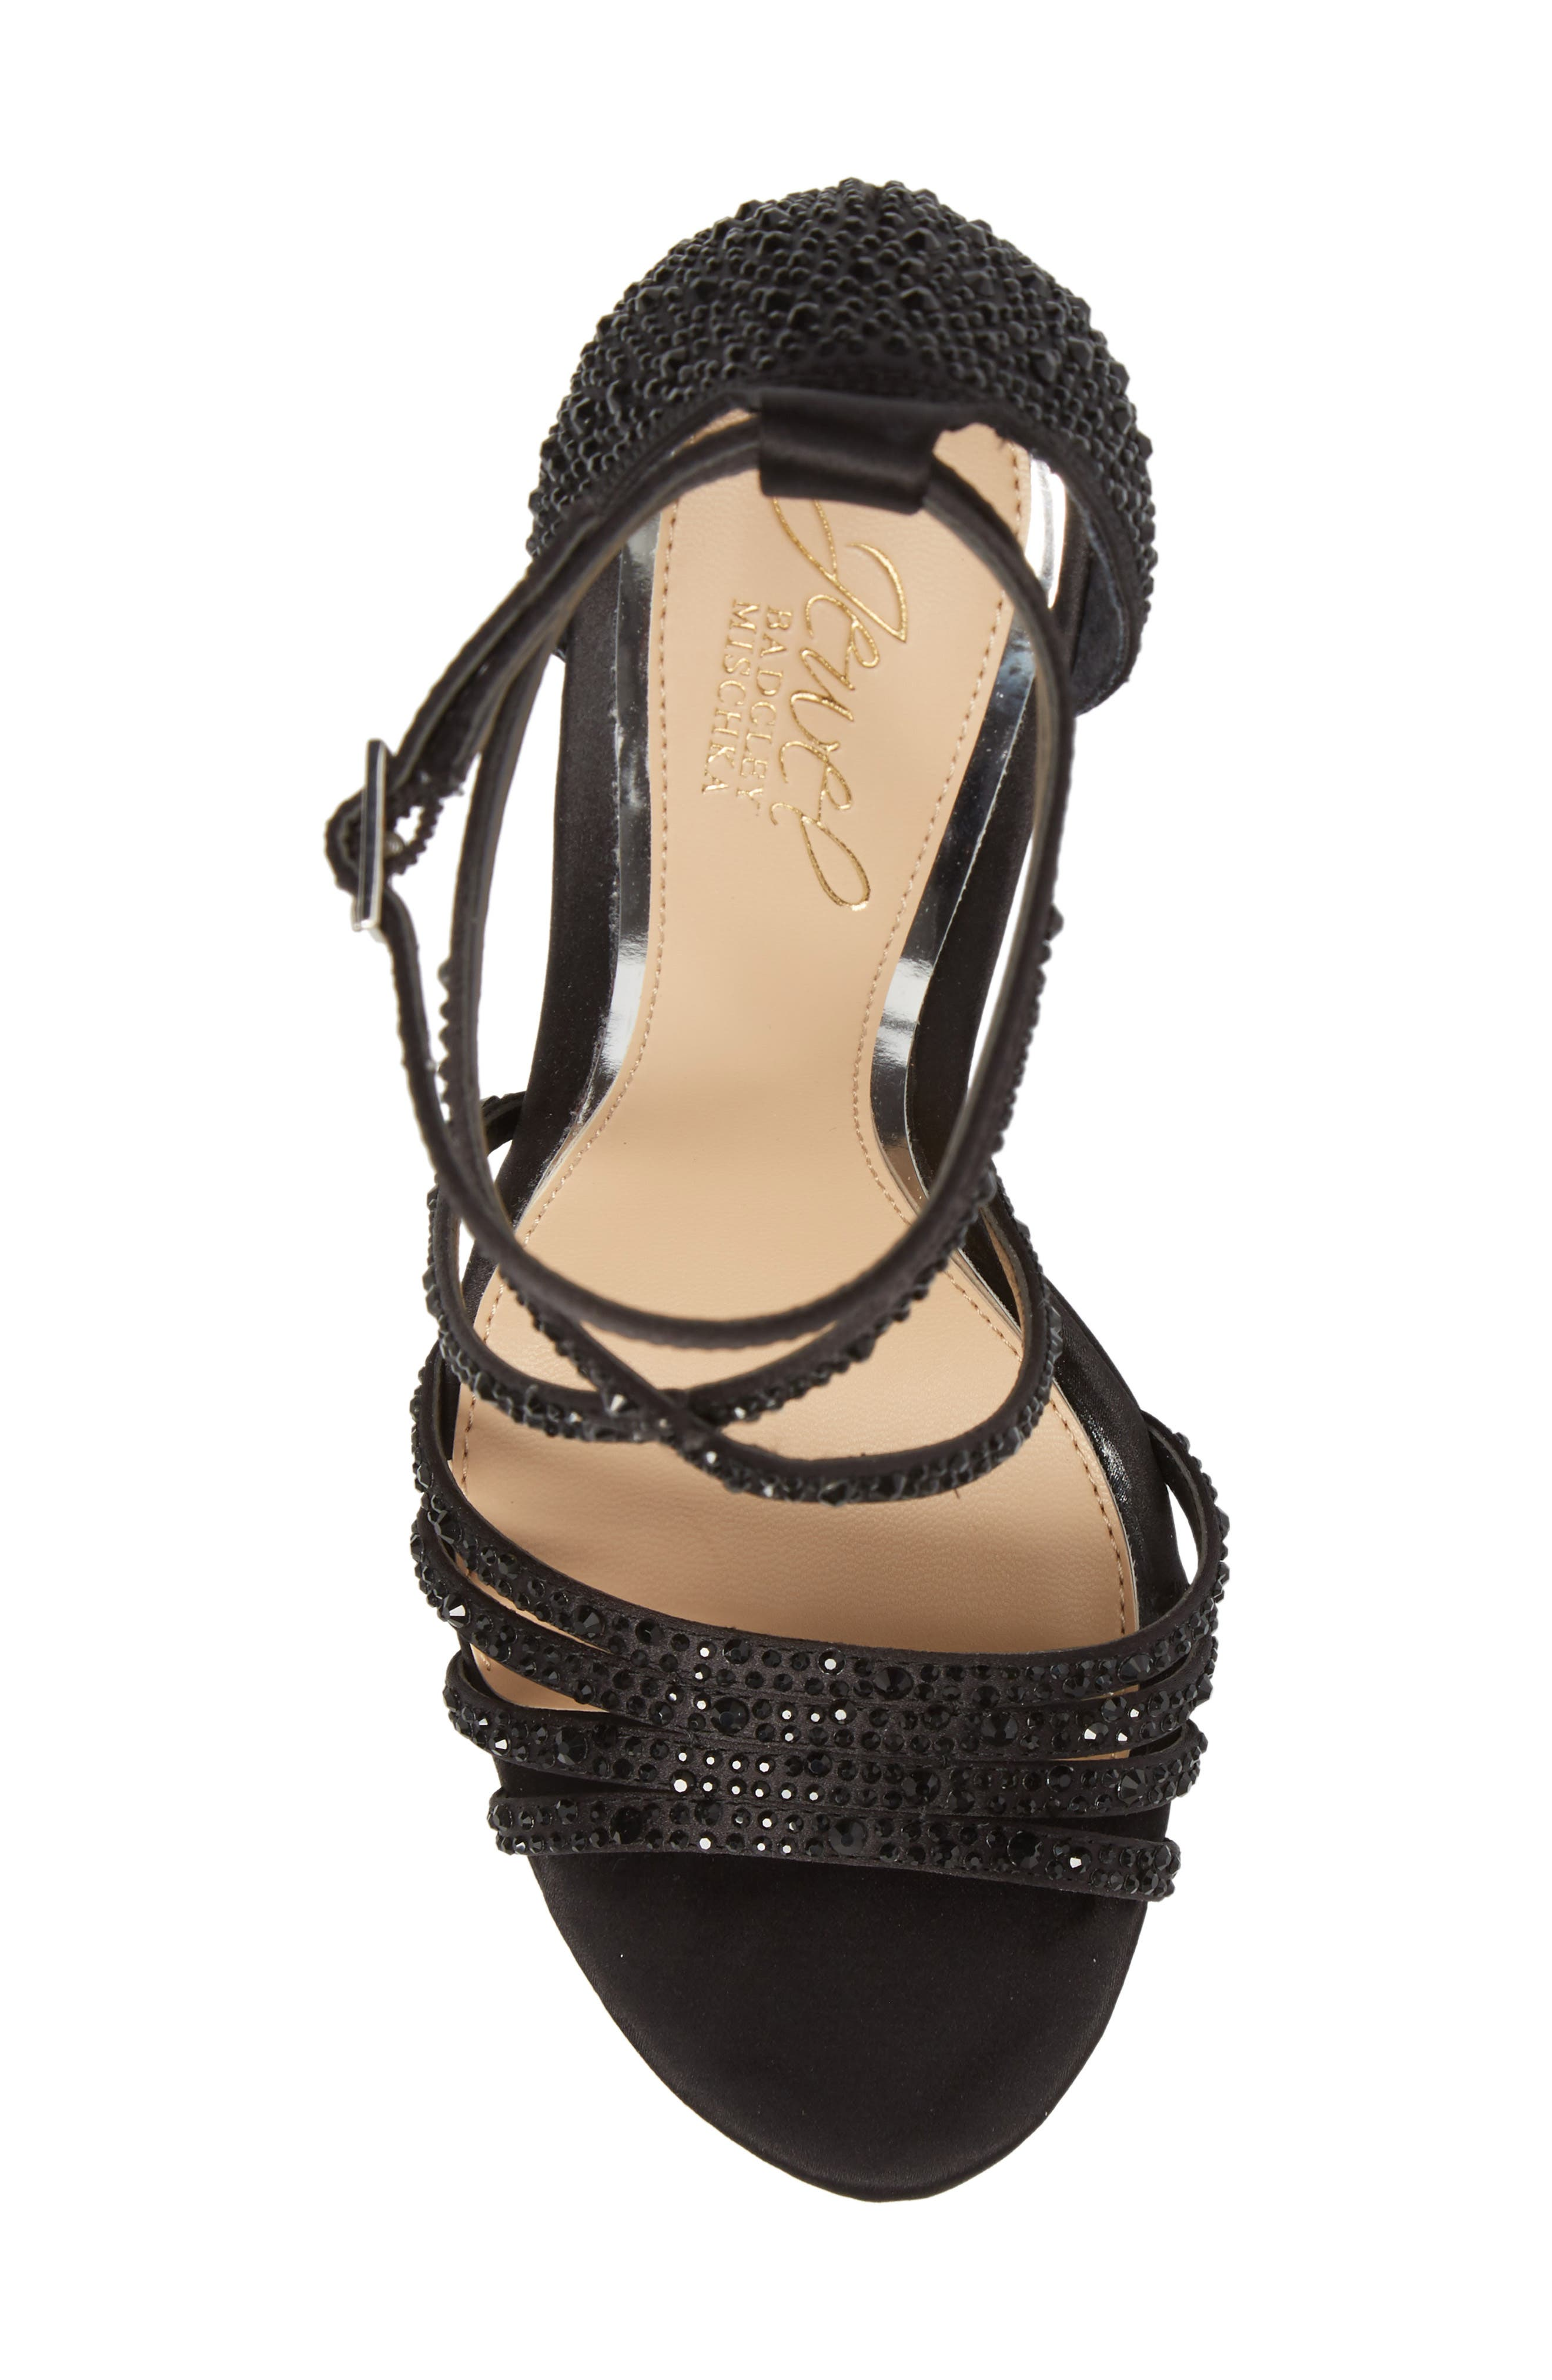 Tarah Crystal Embellished Platform Sandal,                             Alternate thumbnail 13, color,